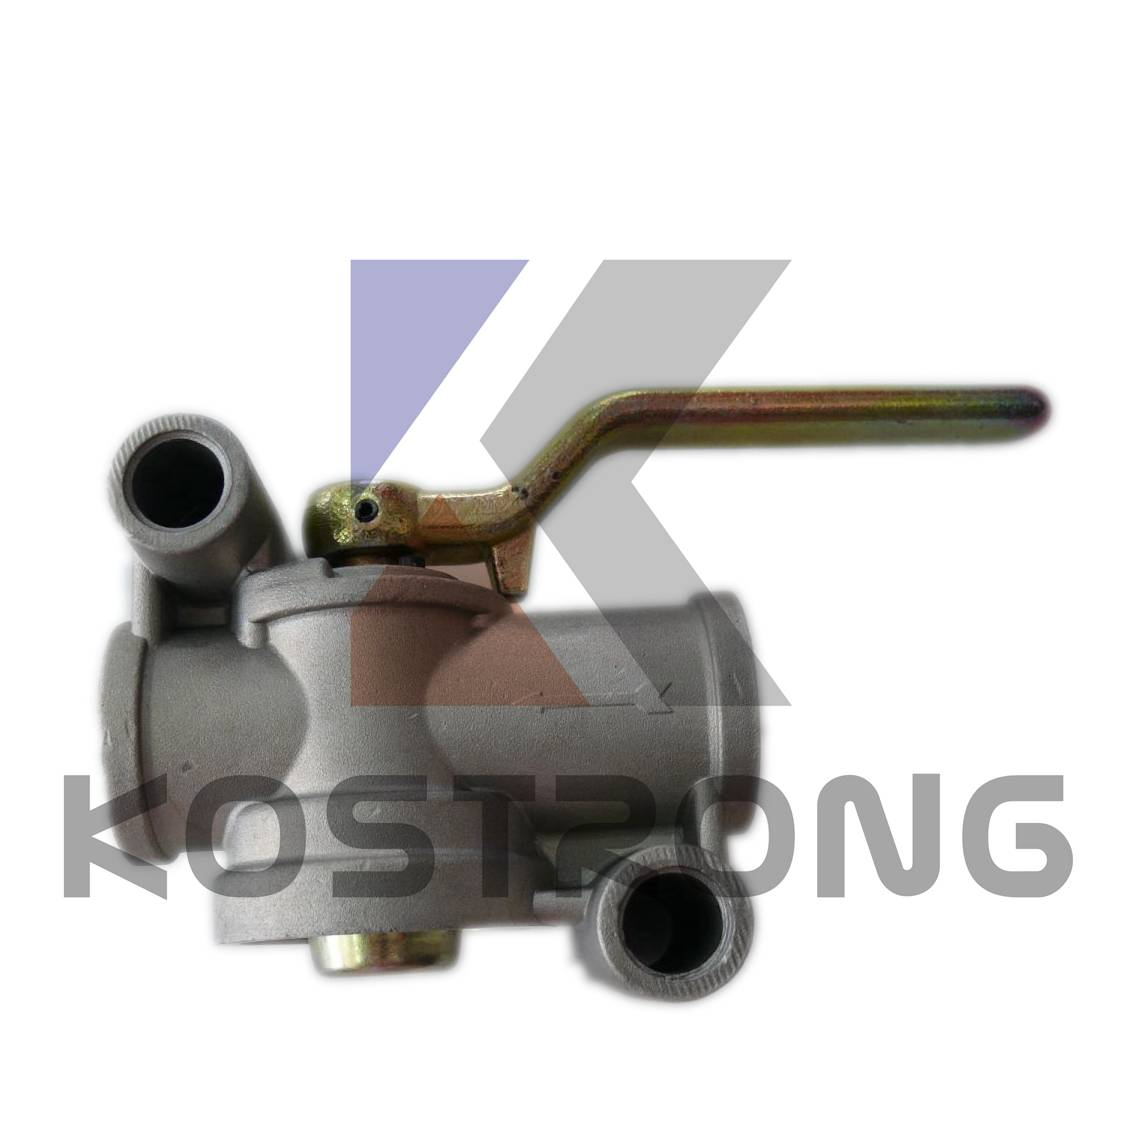 check valve 4520021070 for truck parts